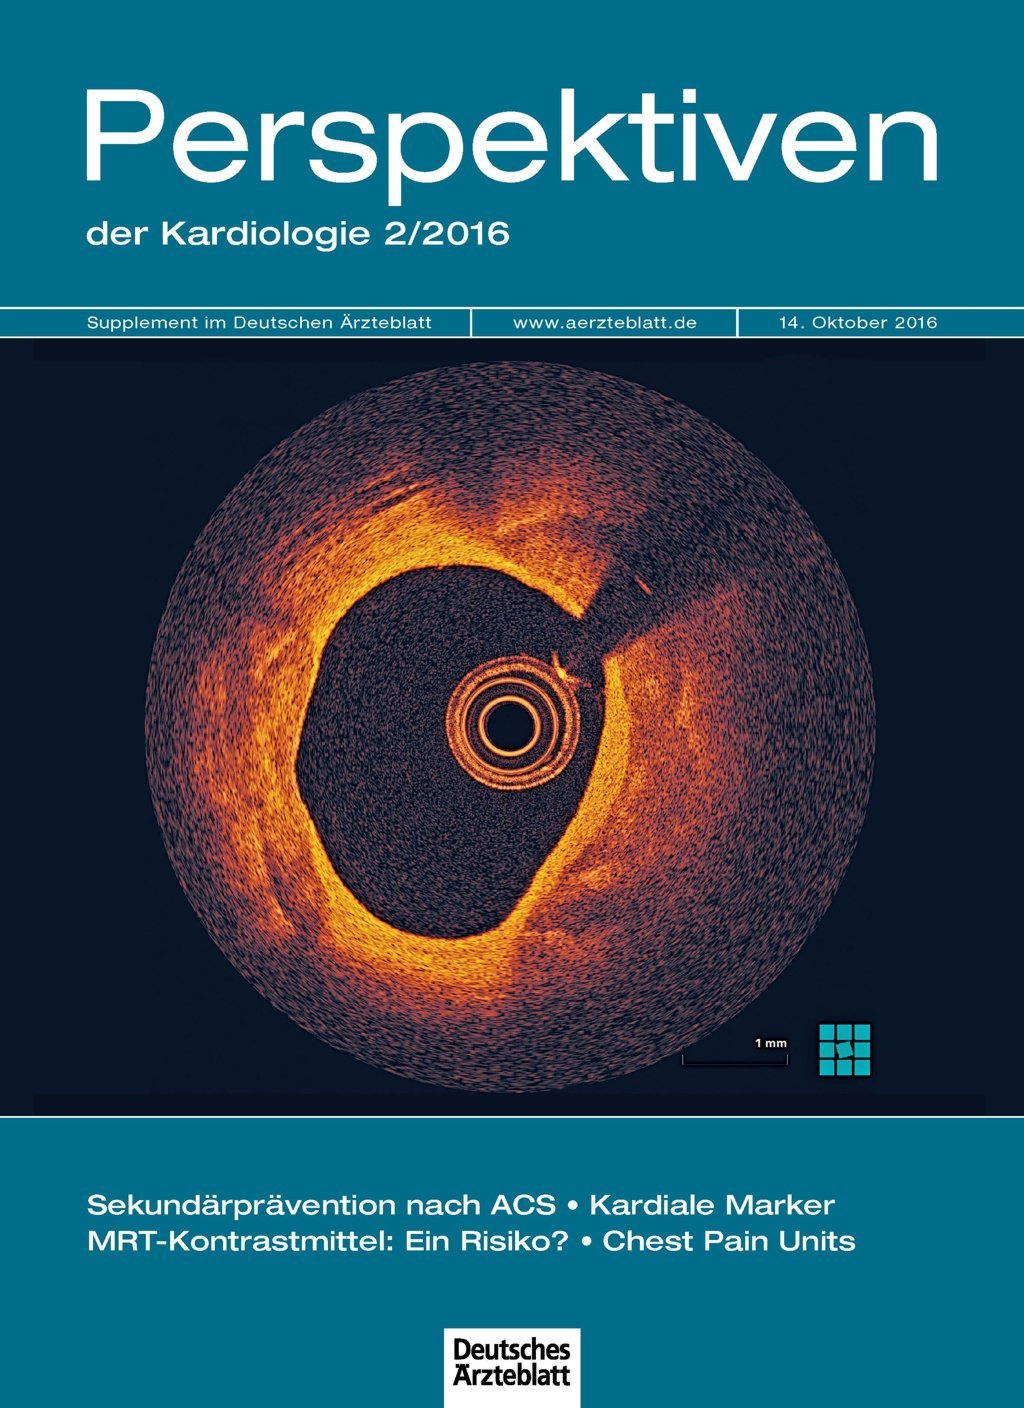 Supplement: Perspektiven der Kardiologie